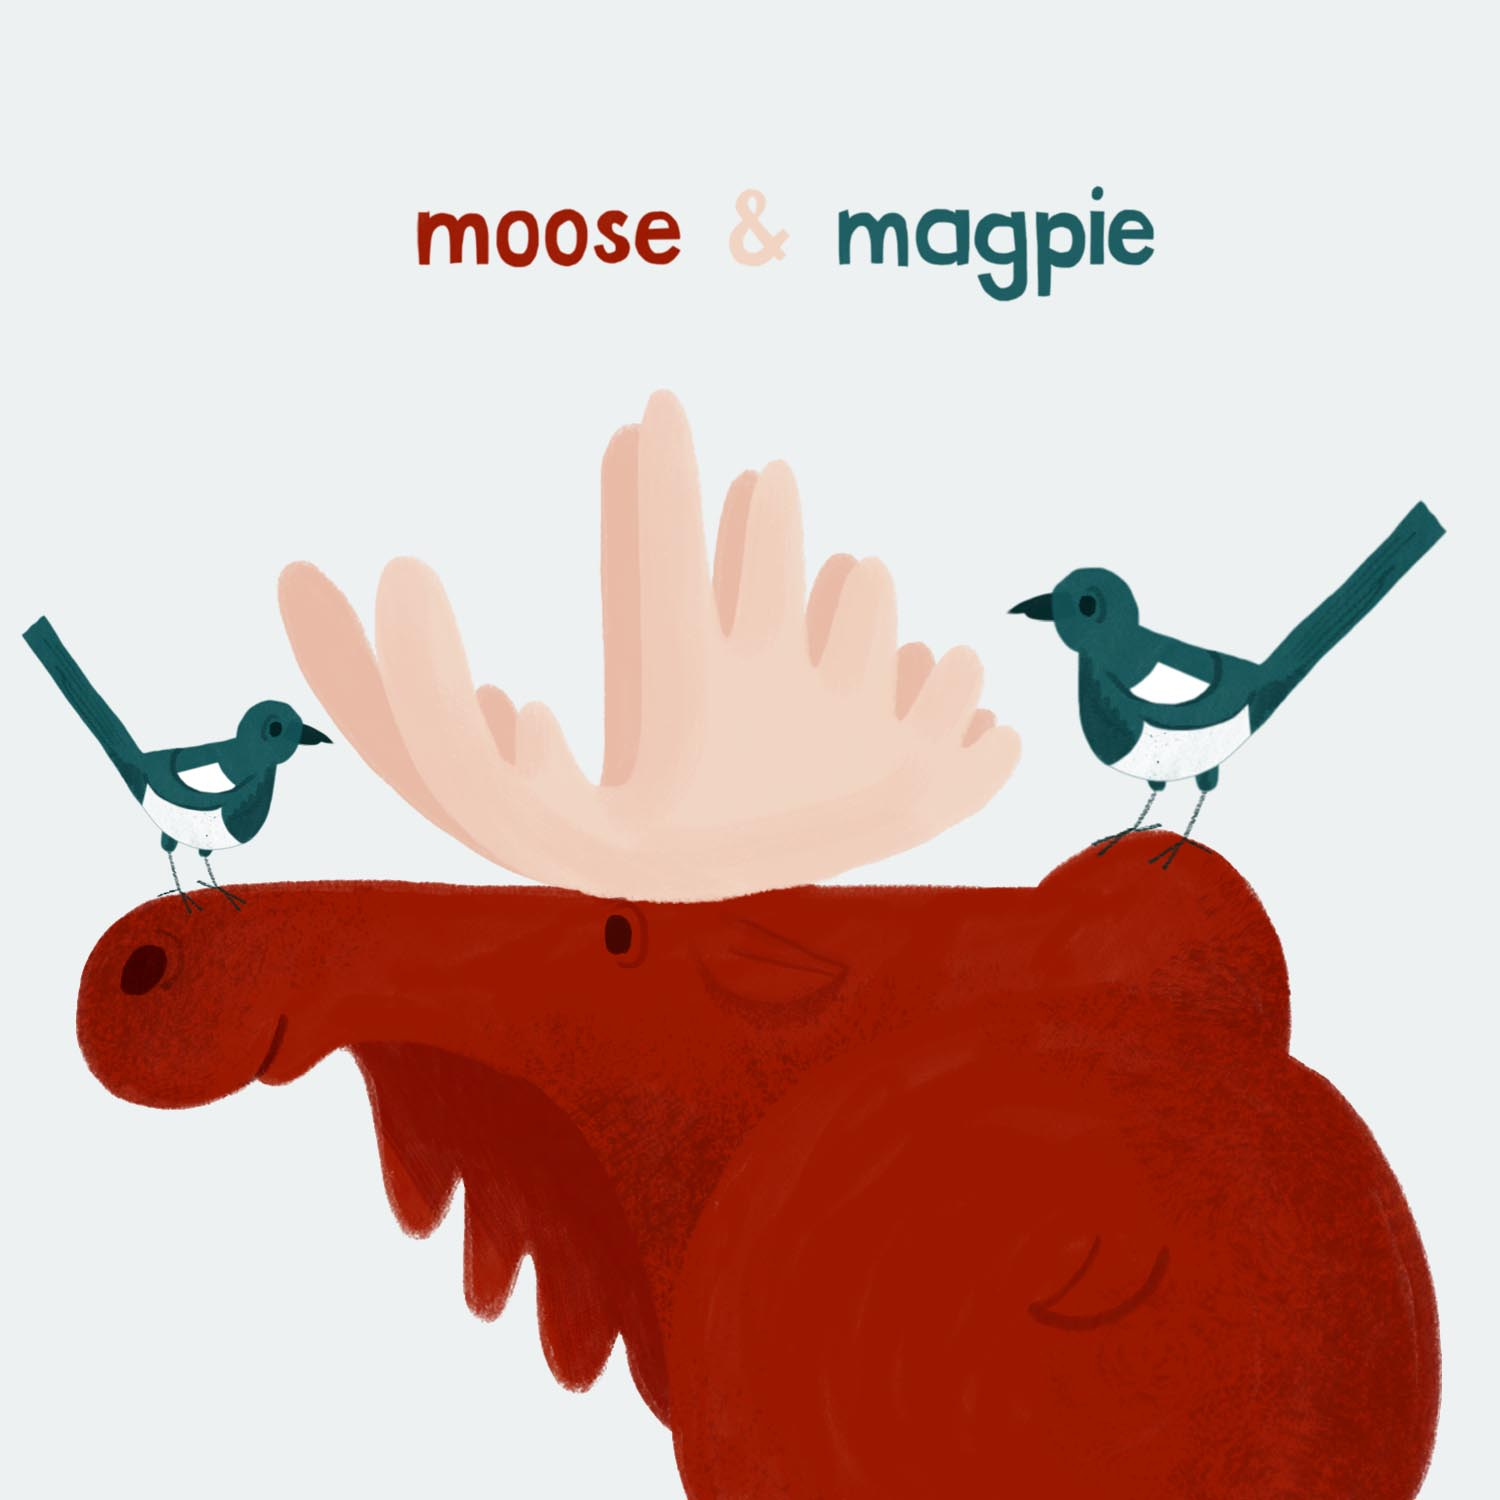 moose and magpie.jpg